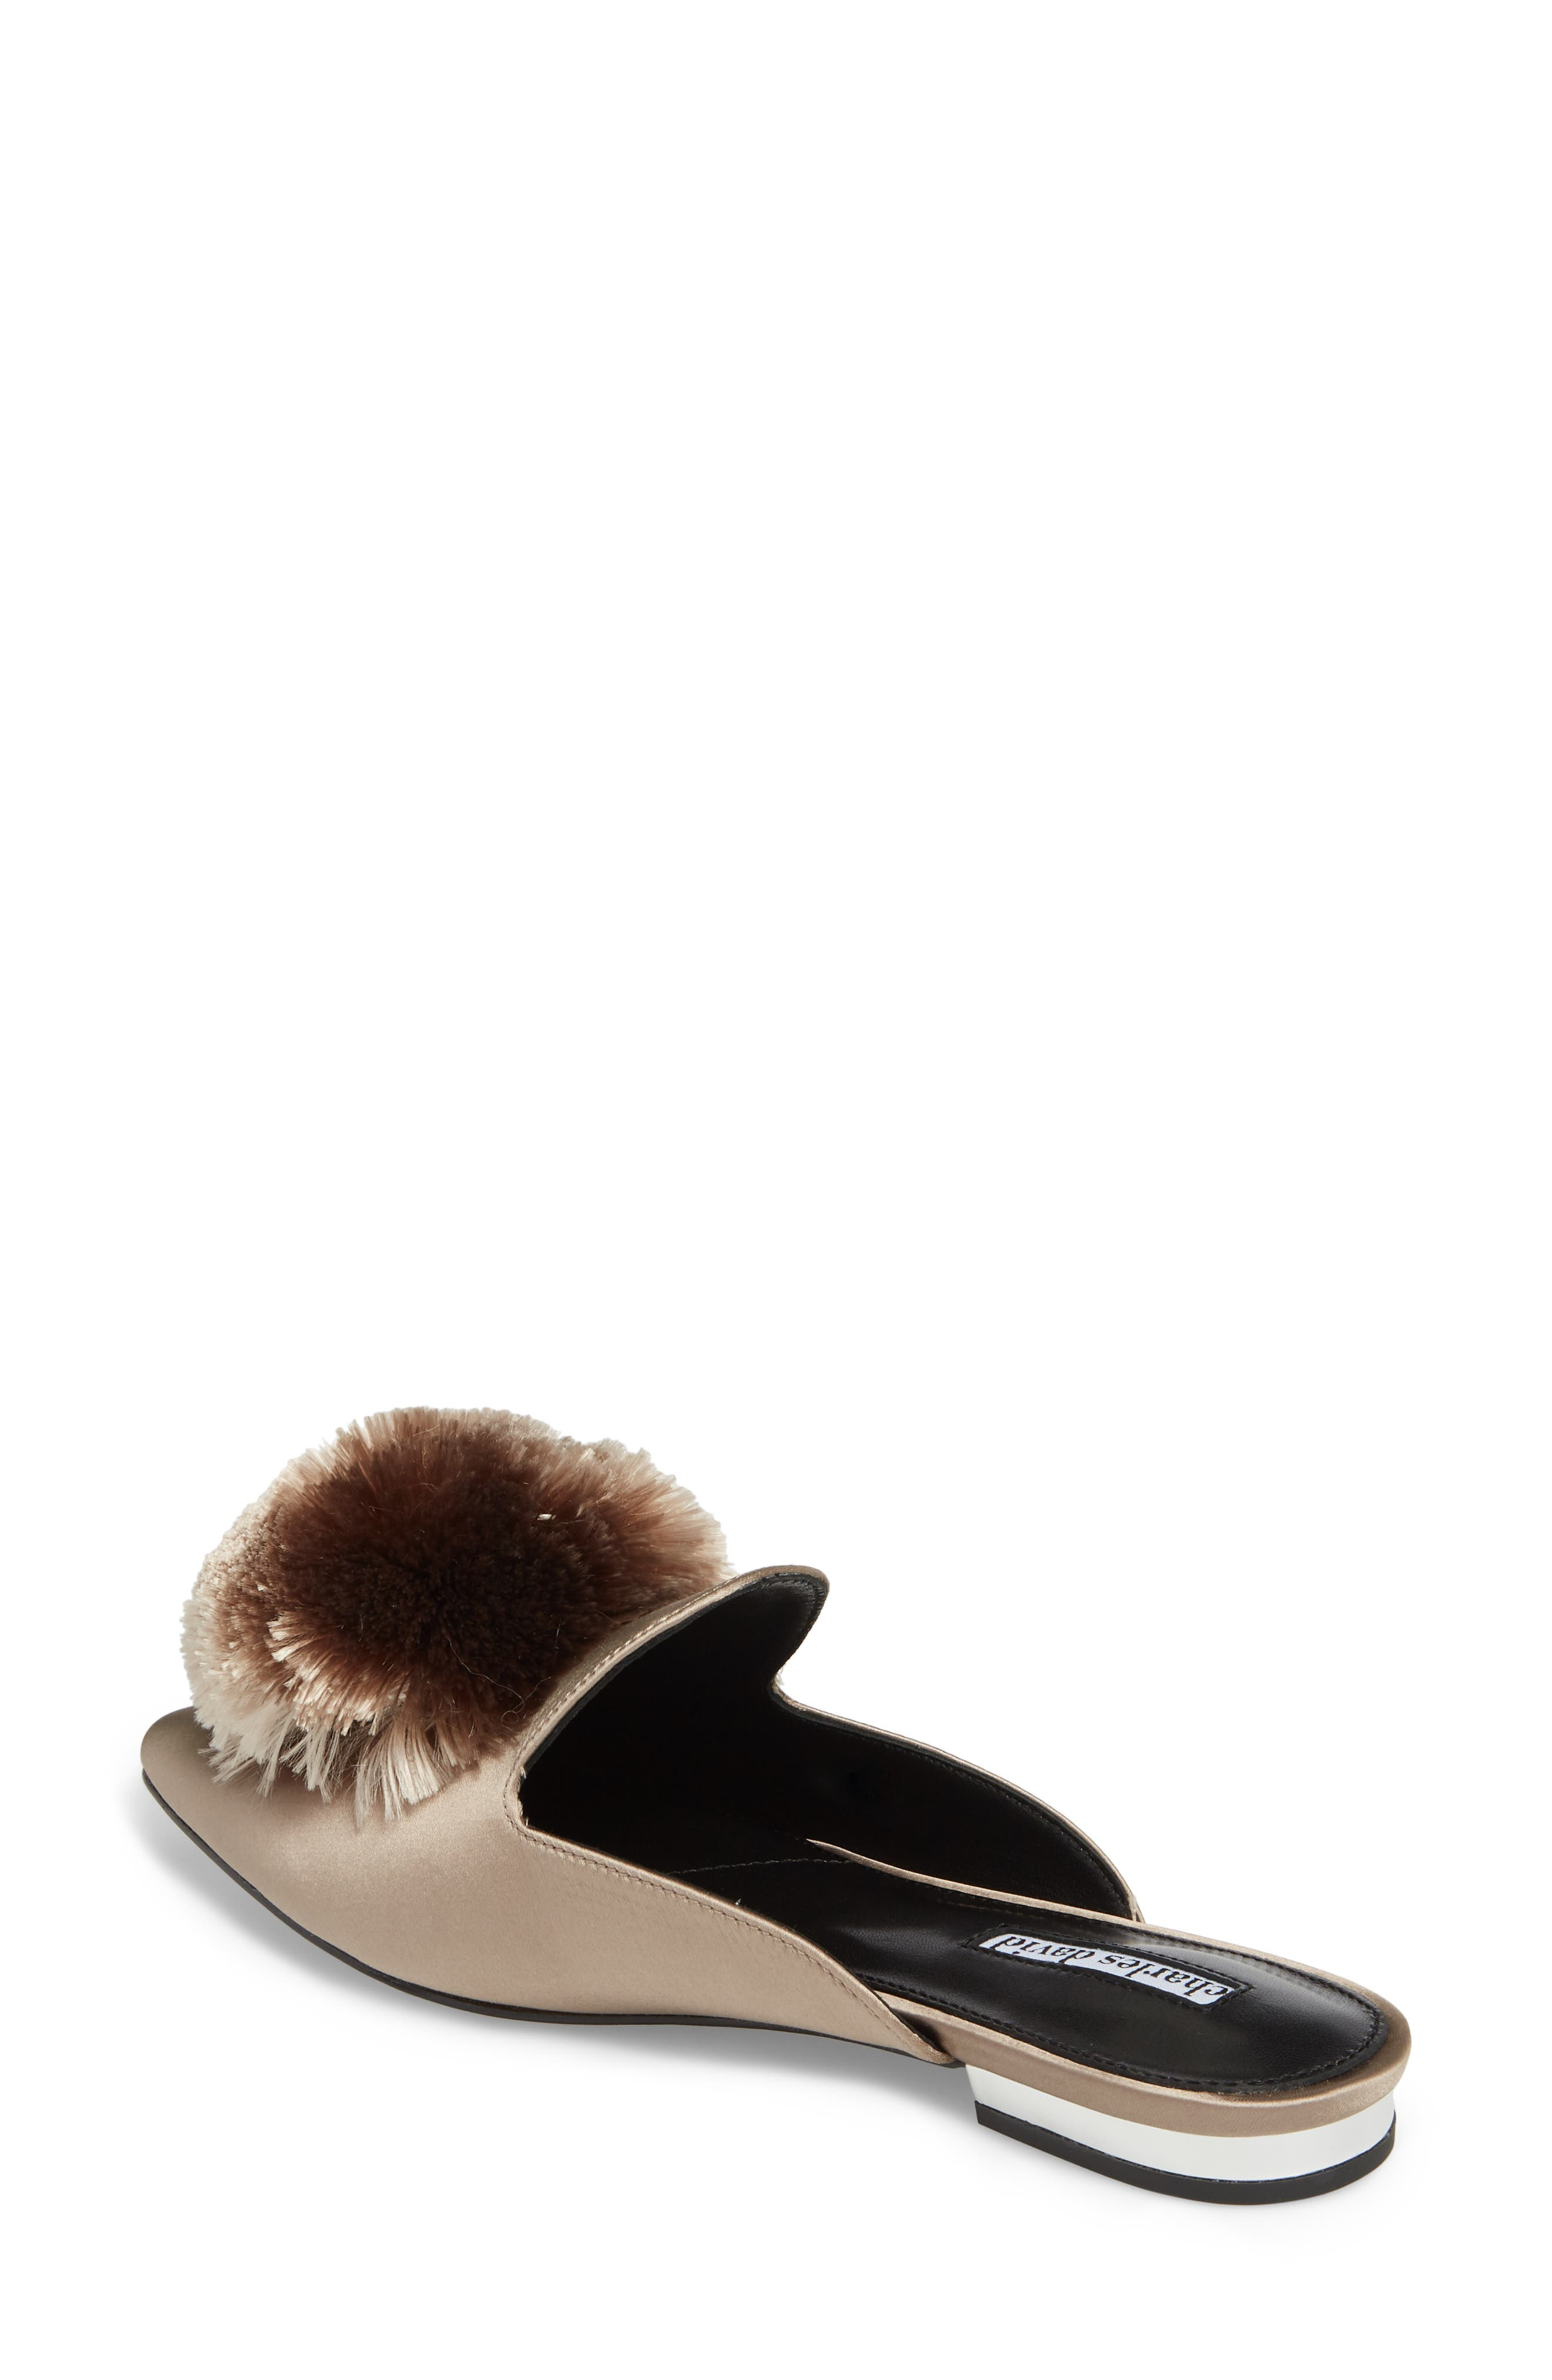 Wella Pompom Loafer Mule,                             Alternate thumbnail 2, color,                             TAUPE SATIN